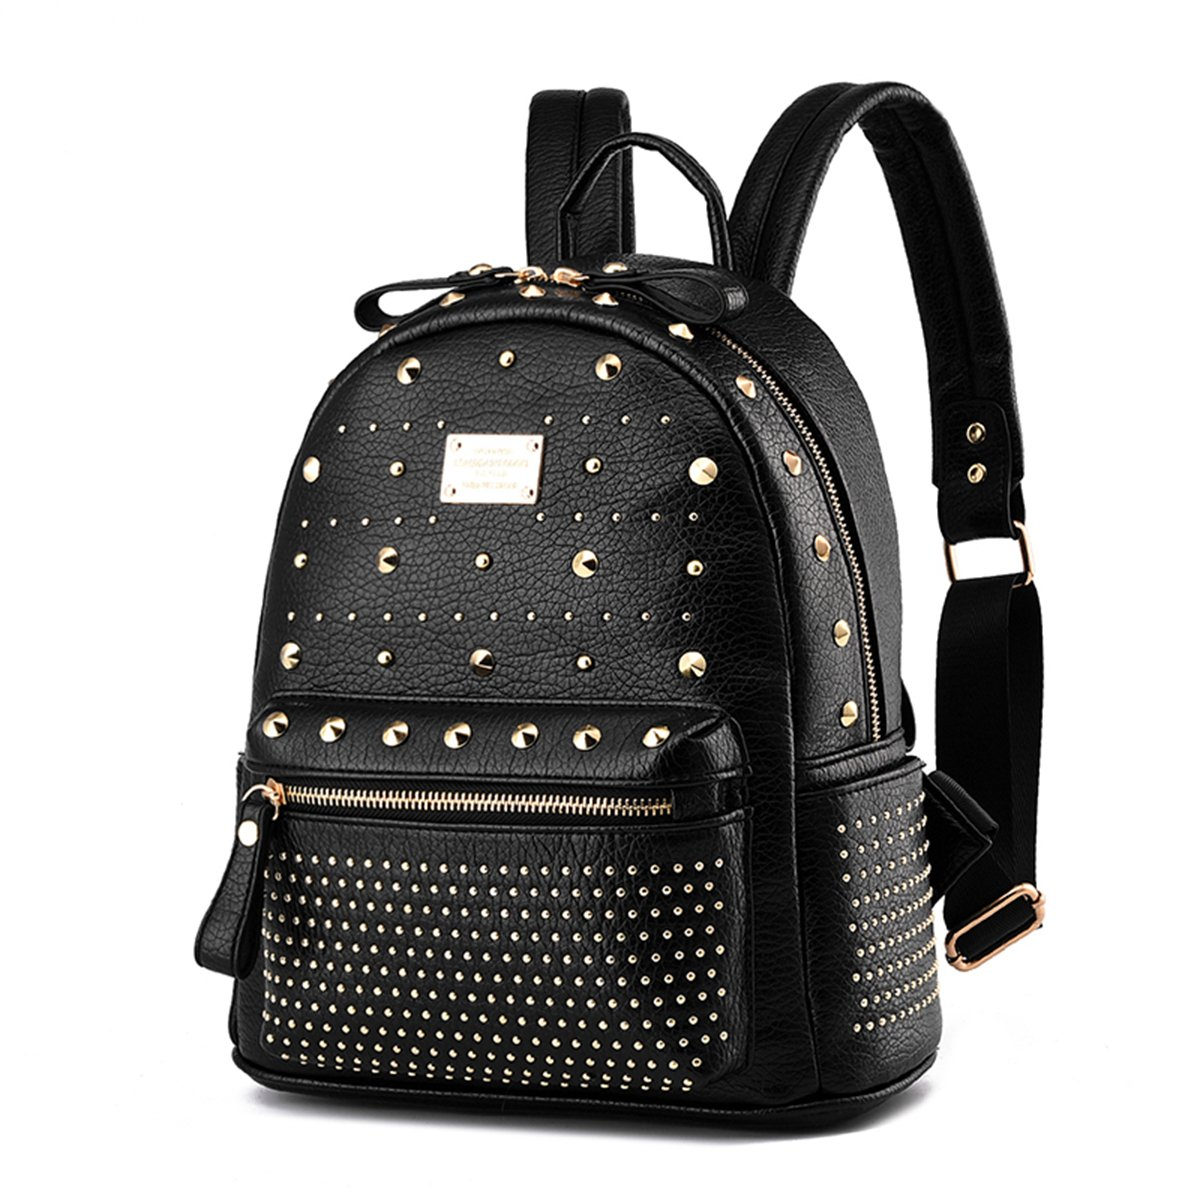 Amazon.com  Women s Mini Rivet Studded Leather Backpack Waterproof Purse  Backpacks Travel Shoulder Bag  Computers   Accessories 0cbe89103ab01